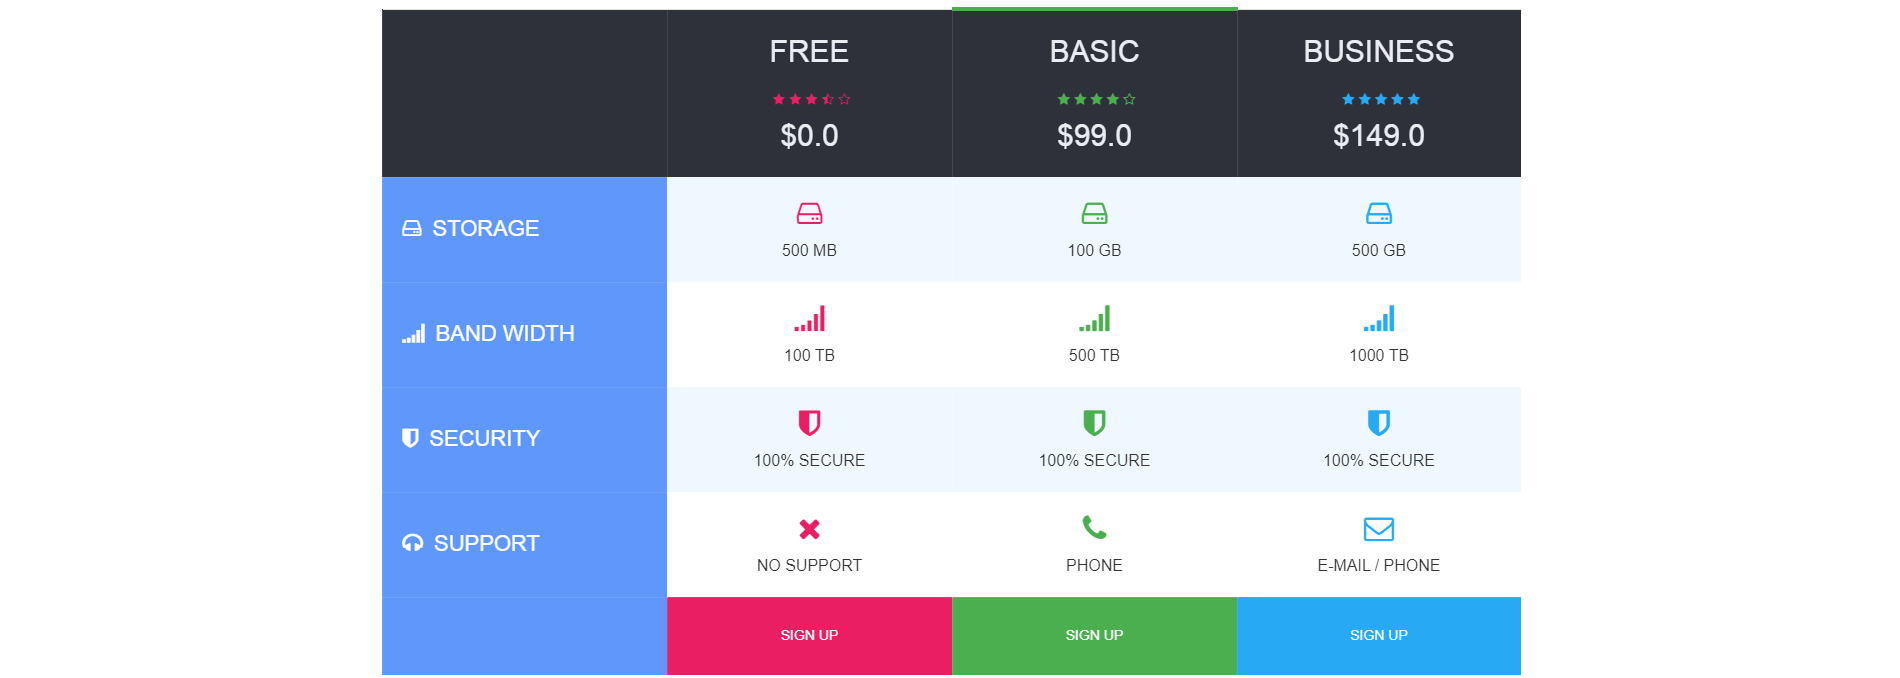 Bootstrap Pricing Snippet